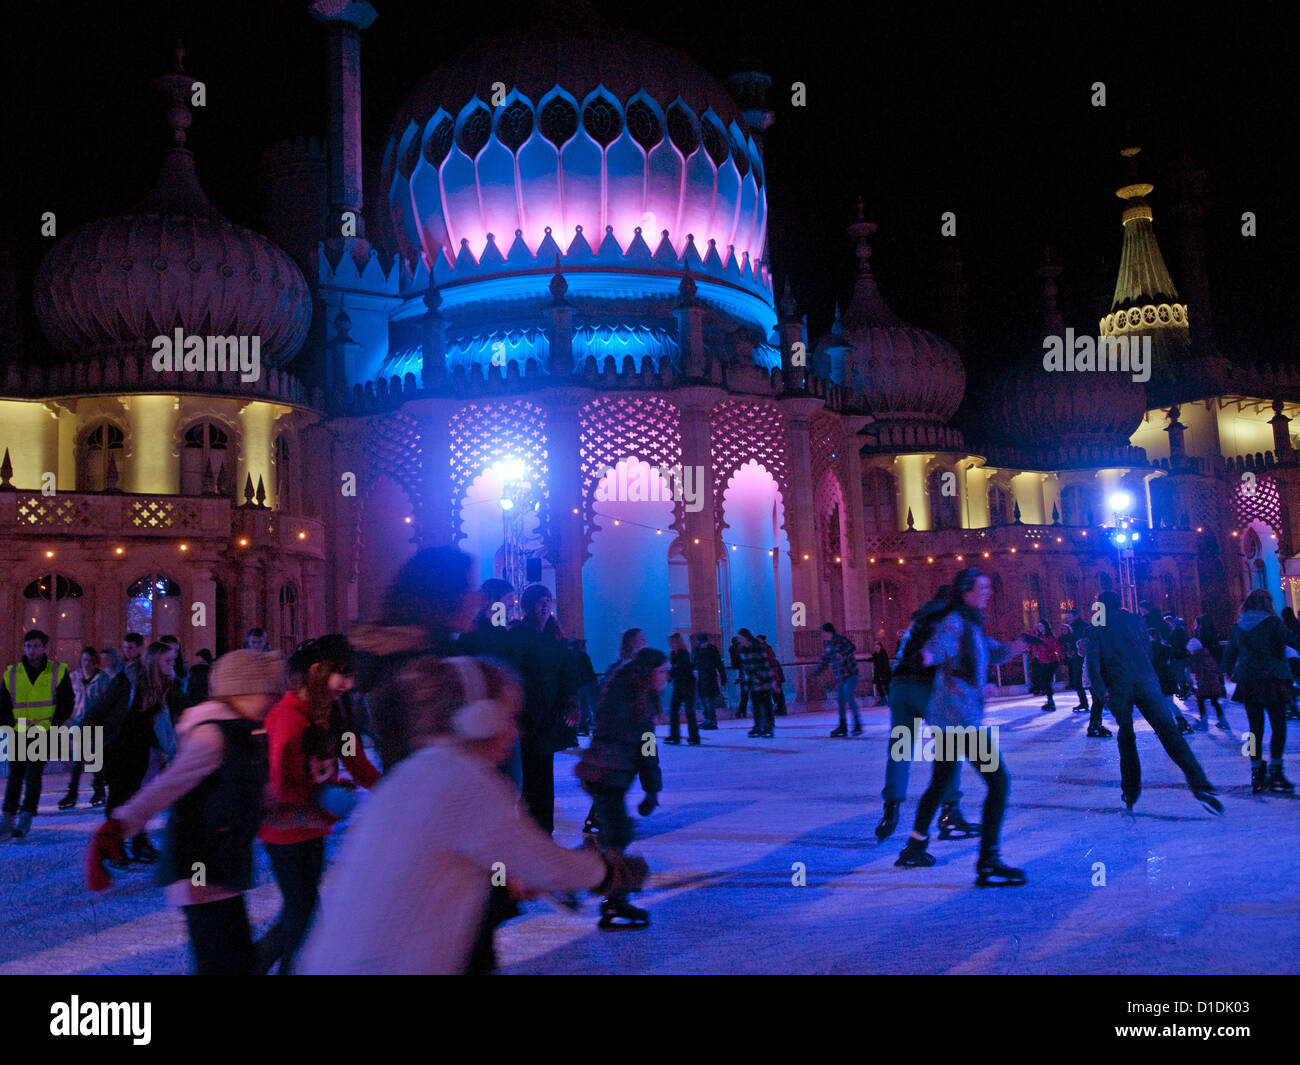 People skating in the evening on a temporary ice rink,erected in Pavilion Gardens,Brighton. - Stock Image